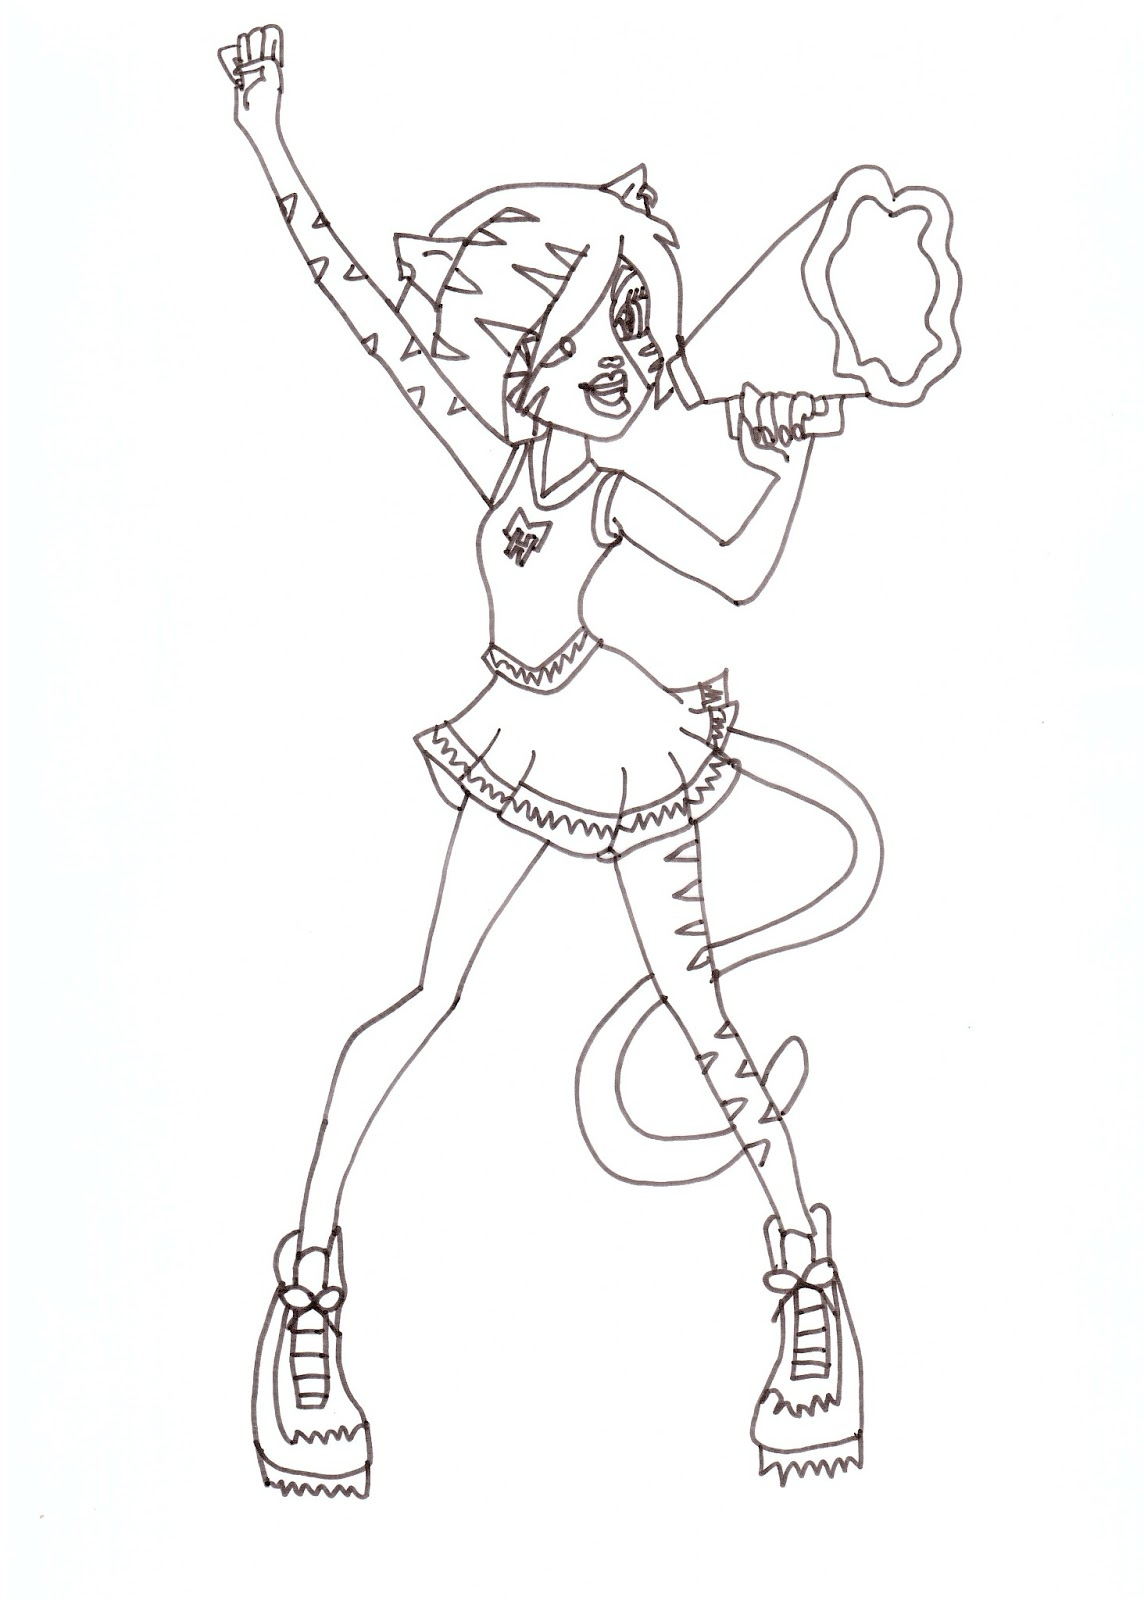 Monster High Printable Coloring Pages Abbey Colorings Download Of Wydowna Spider by Elfkena On Deviantart to Print